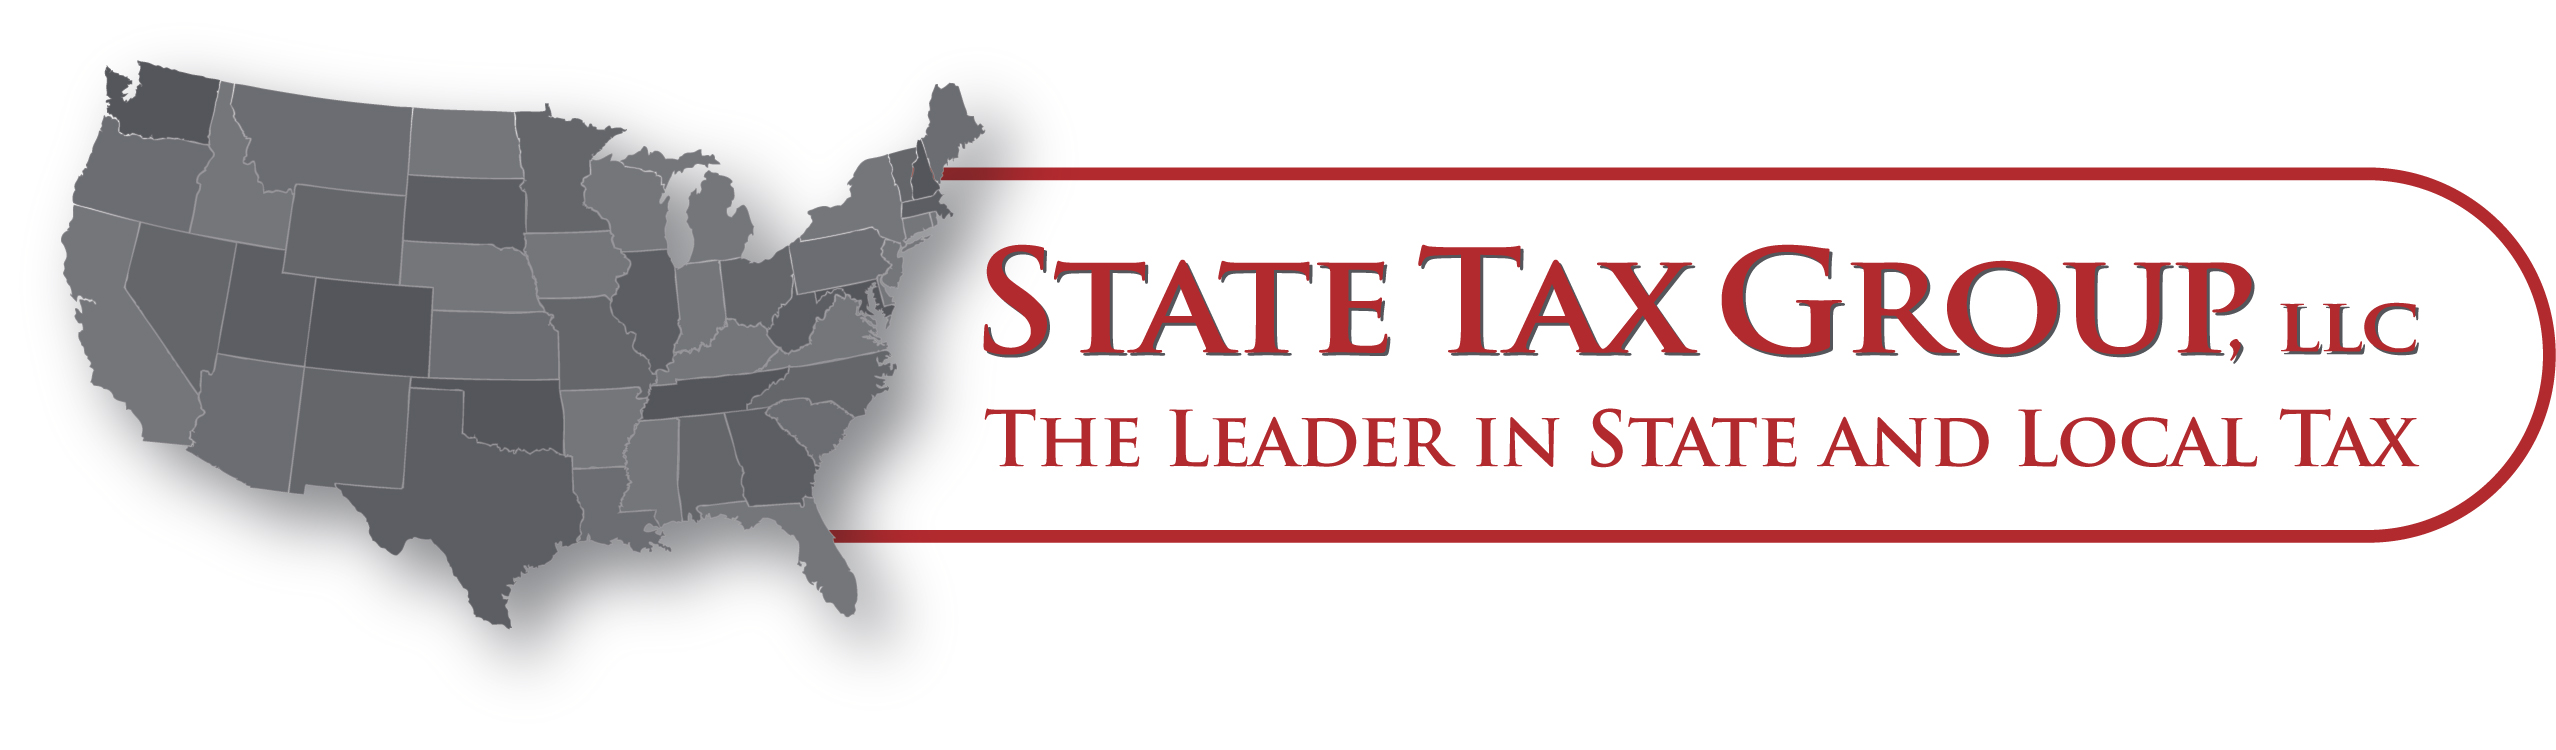 Hotel Occupancy Tax | State Tax Group  LLC